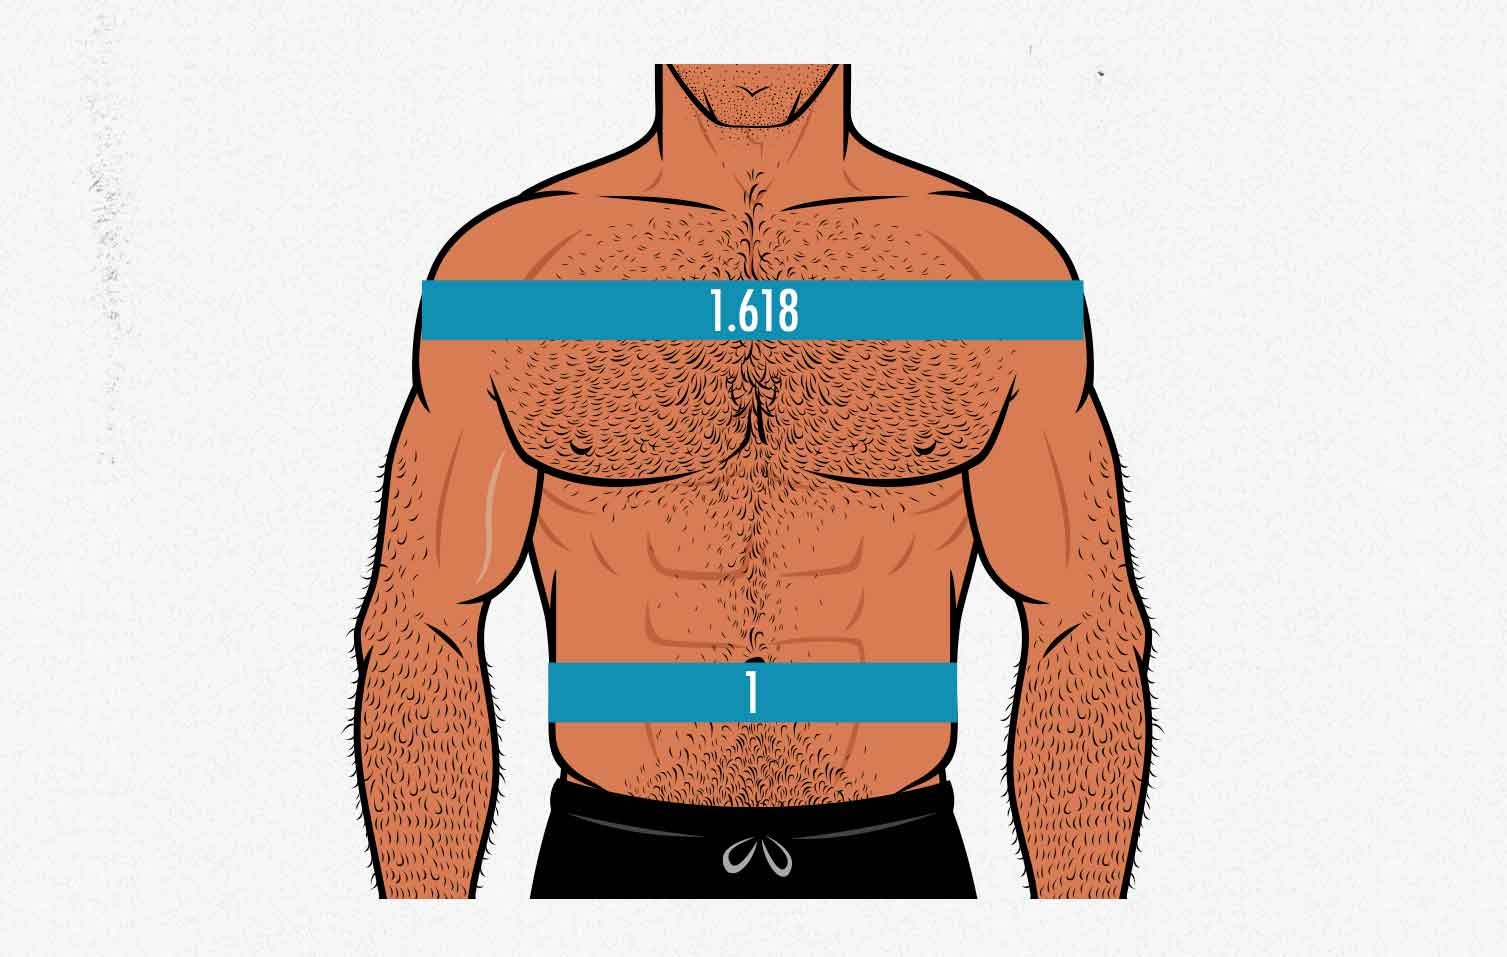 Diagram showing how to measure the ideal shoulder-to-waist ratio for men.